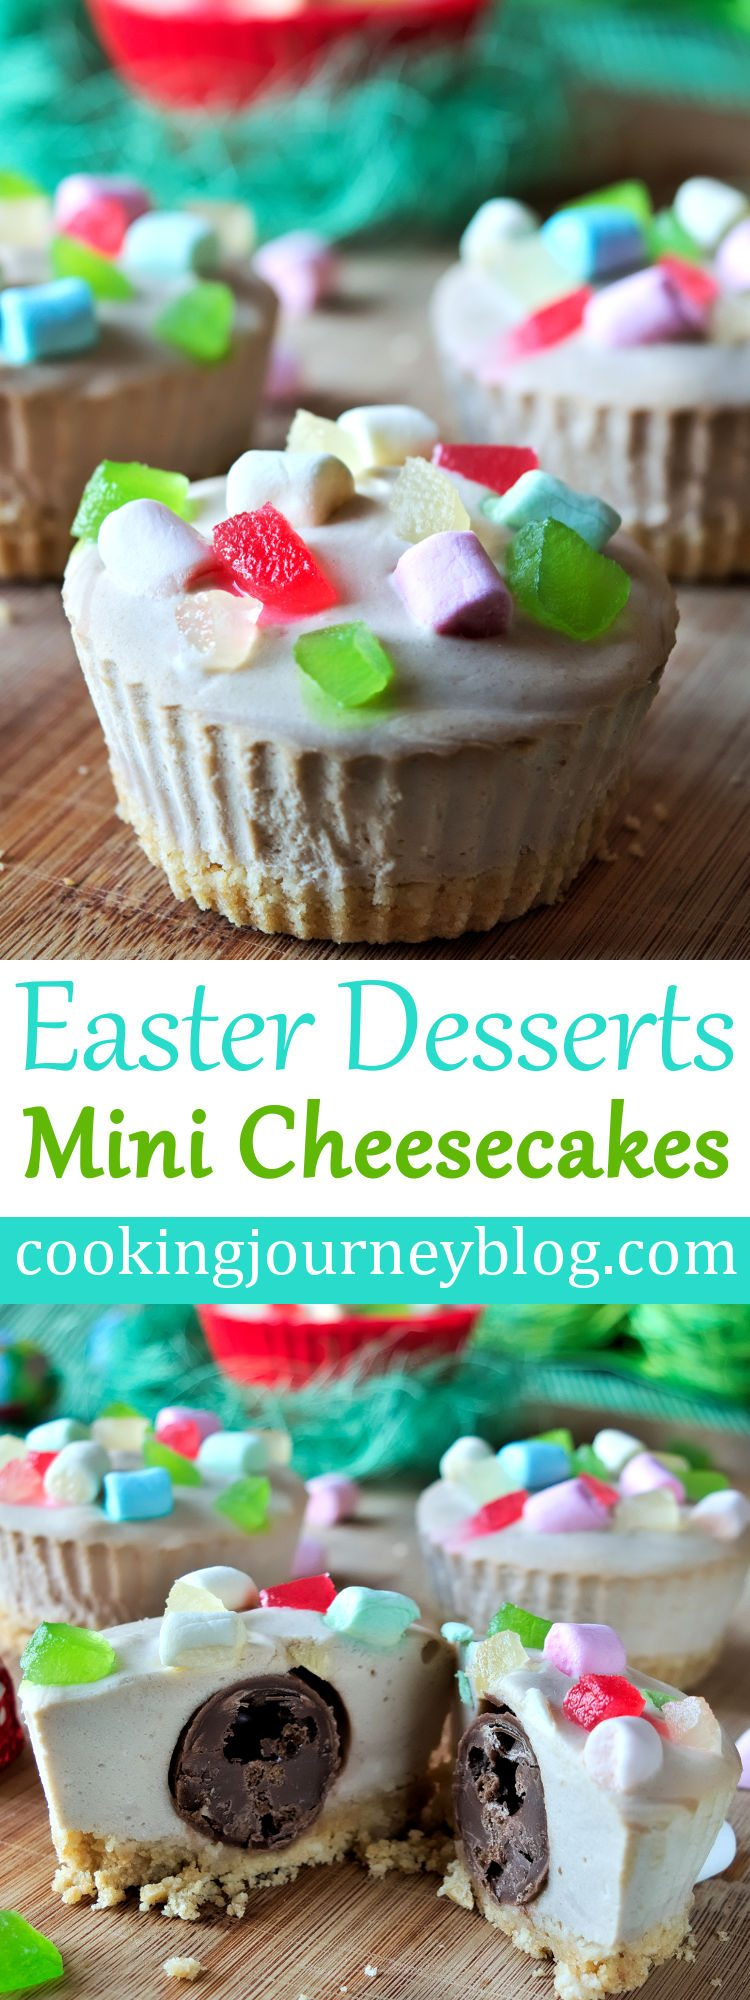 Get this mini cheesecake recipe to make easy and tasty Easter desserts! No bake cheesecake, that is topped with marshmallows and candied fruits, look pretty and also have a surprise inside. #easterrecipes #easter #desserts #surprise